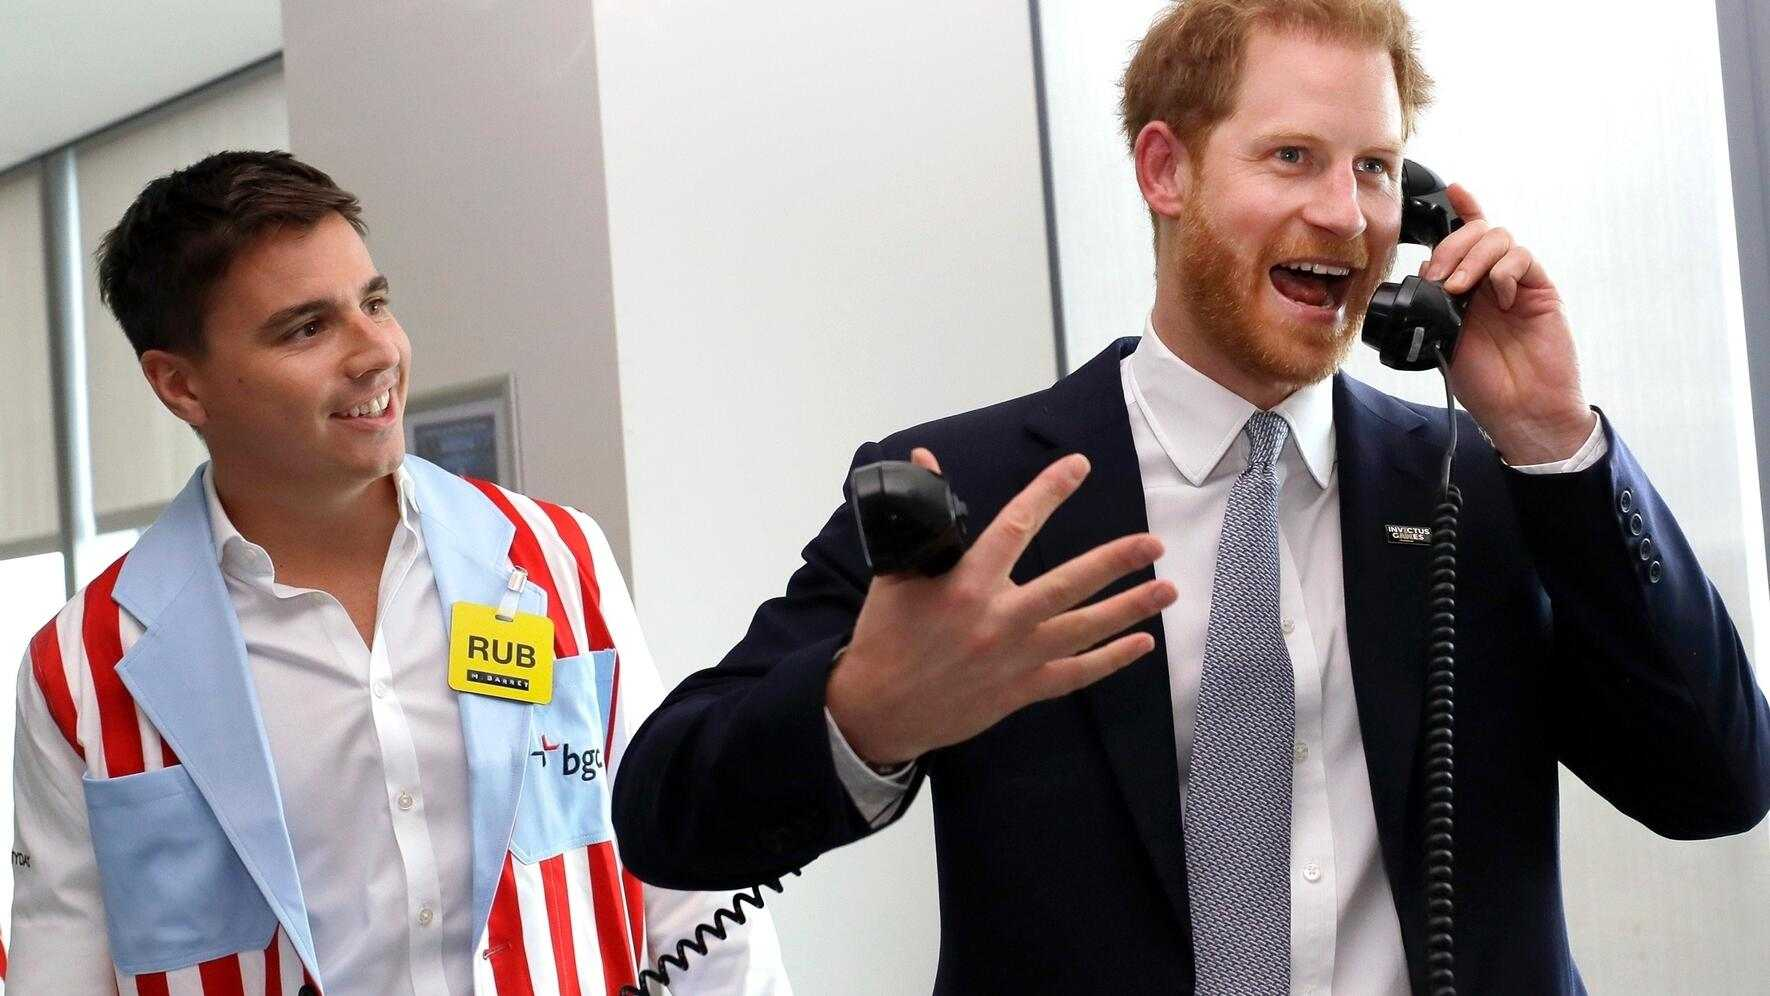 BGUK_1714575 - ** RIGHTS: WORLDWIDE EXCEPT IN FRANCE, UNITED KINGDOM ** London, UNITED KINGDOM  -    Prince Harry, The Duke of Sussex attends the 15th annual BGC Charity Day in Canary Wharf, London, UK, on the 11th September 2019.Pictured: Prince Harry, Duke of SussexBACKGRID UK 11 SEPTEMBER 2019 UK: +44 208 344 2007 / uksales@backgrid.comUSA: +1 310 798 9111 / usasales@backgrid.com*UK Clients - Pictures Containing ChildrenPlease Pixelate Face Prior To Publication*